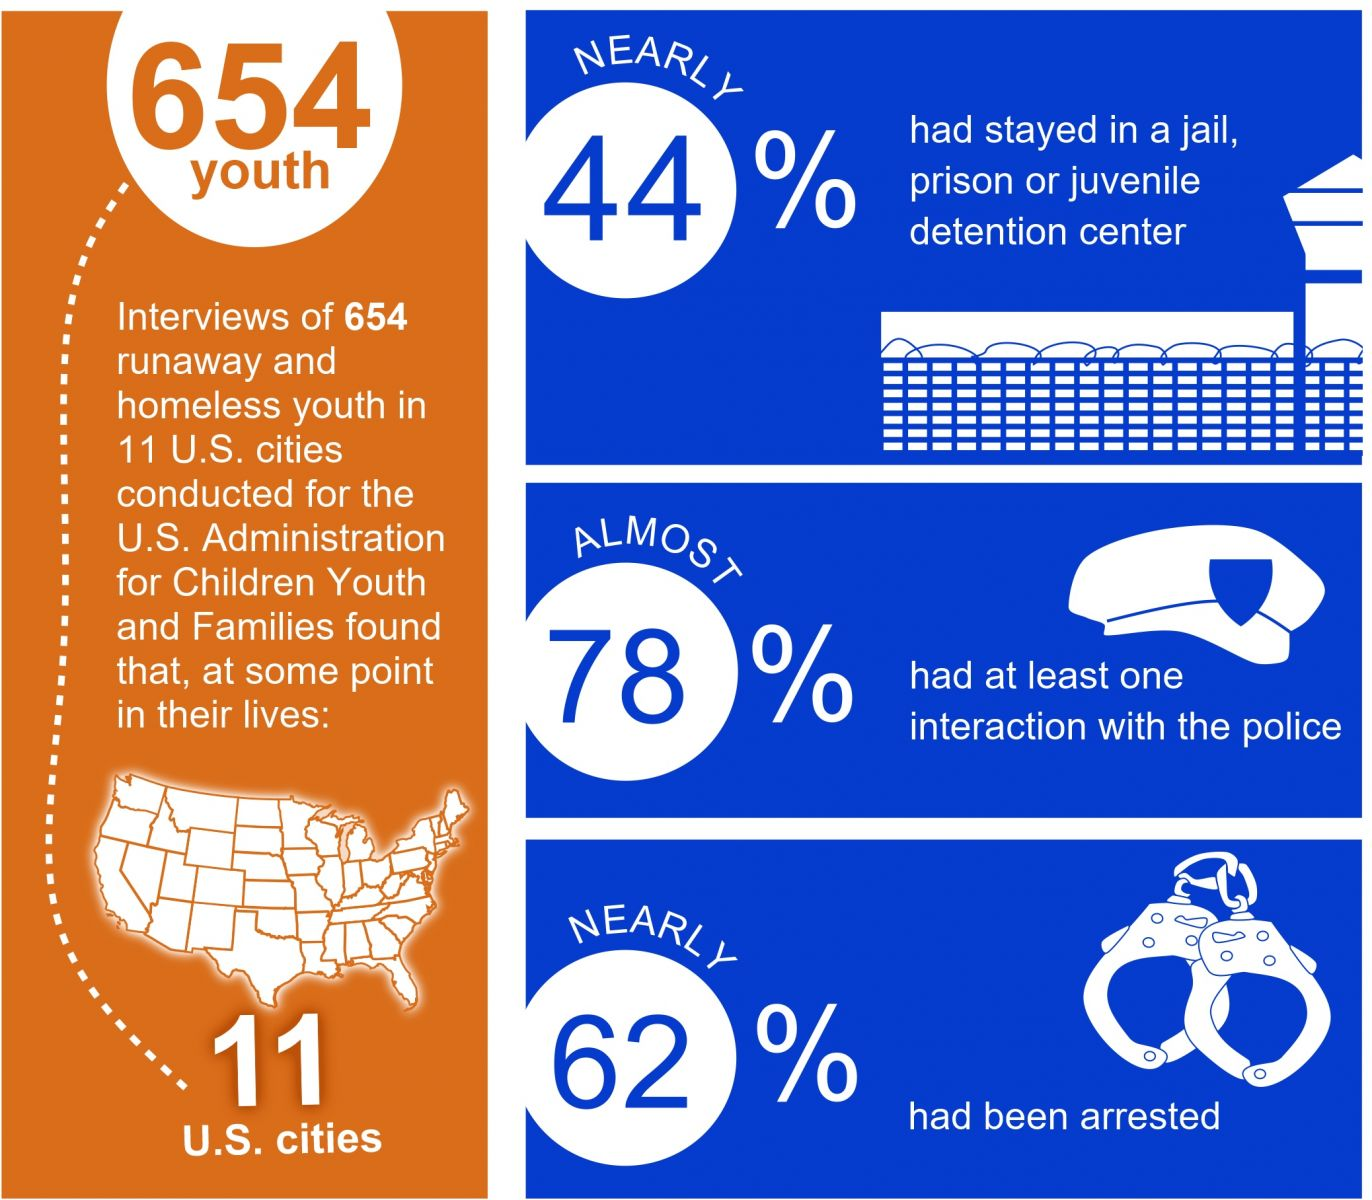 juvenile justice a century of change Implementing change: juvenile justice and youth homelessness our mission the coalition for juvenile justice (cjj) envisions a nation where fewer children are at risk of delinquency and if they are at risk or involved with the justice system, they and their families receive every possible opportunity to live safe, healthy and fulfilling lives.